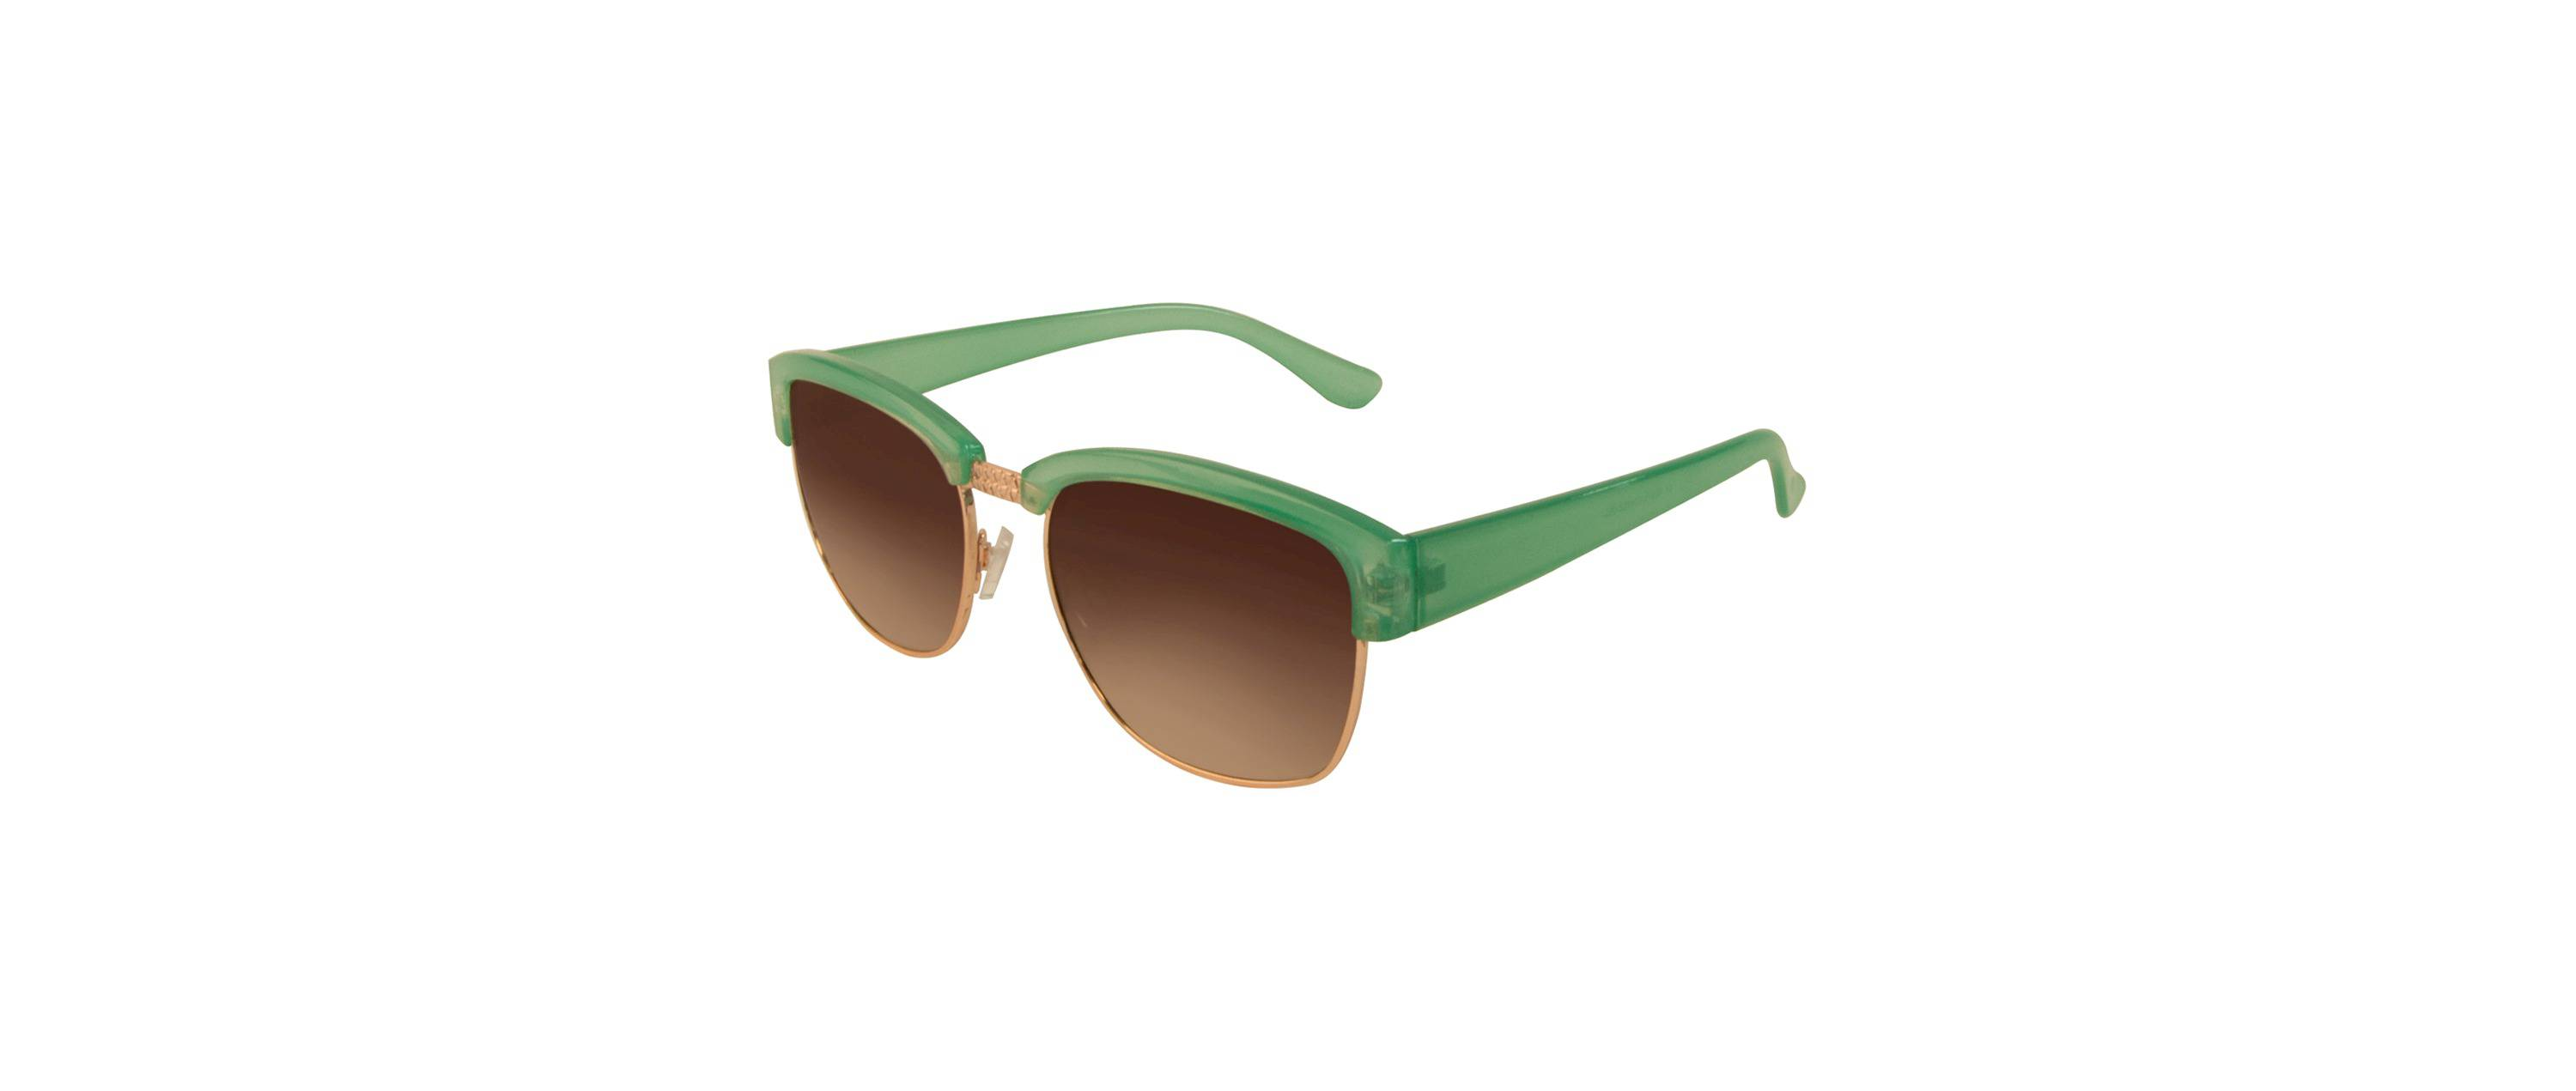 Retro Green and Gold Sunglasses